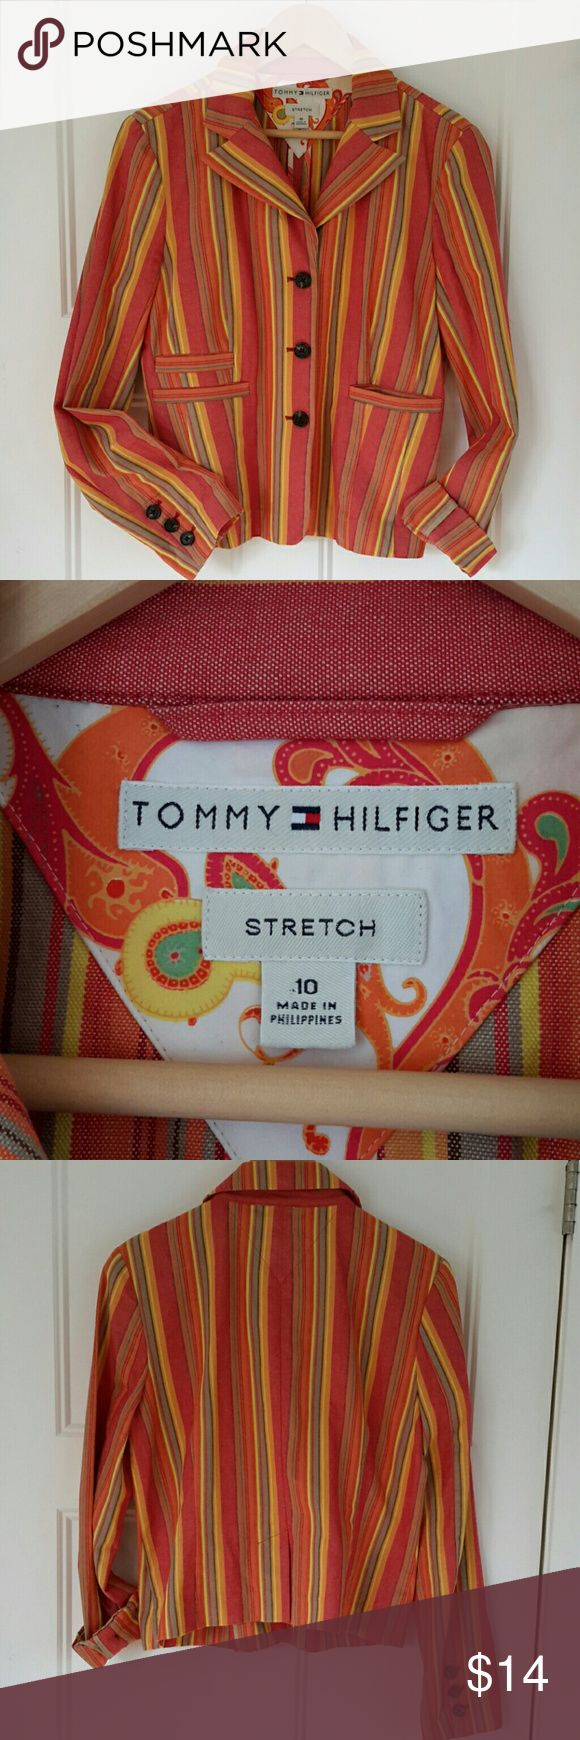 Tommy Hilfiger striped blazer Multicolor striped cotton blazer in red, yellow, orange with tan. Excellent tailoring details and it is washable. Logo embossed buttons. Unlined. Tommy Hilfiger Jackets & Coats Blazers